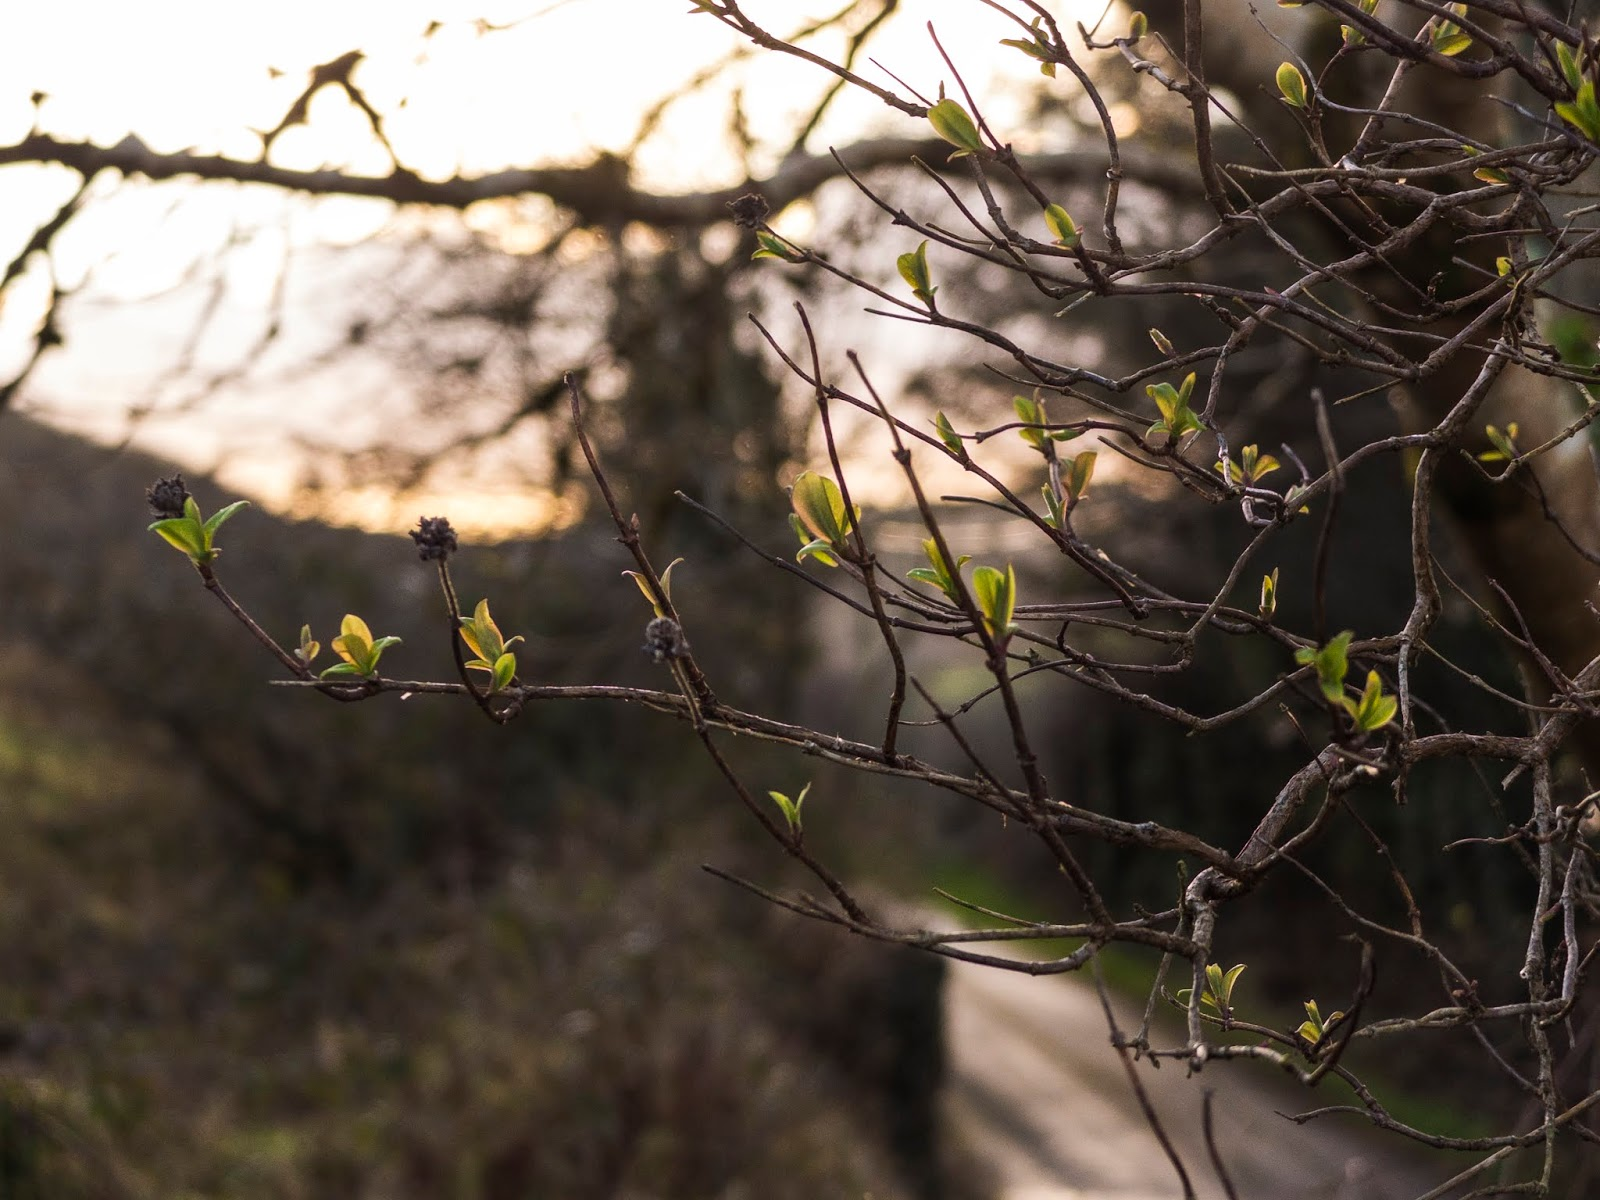 The first of spring leaves appearing on branches.